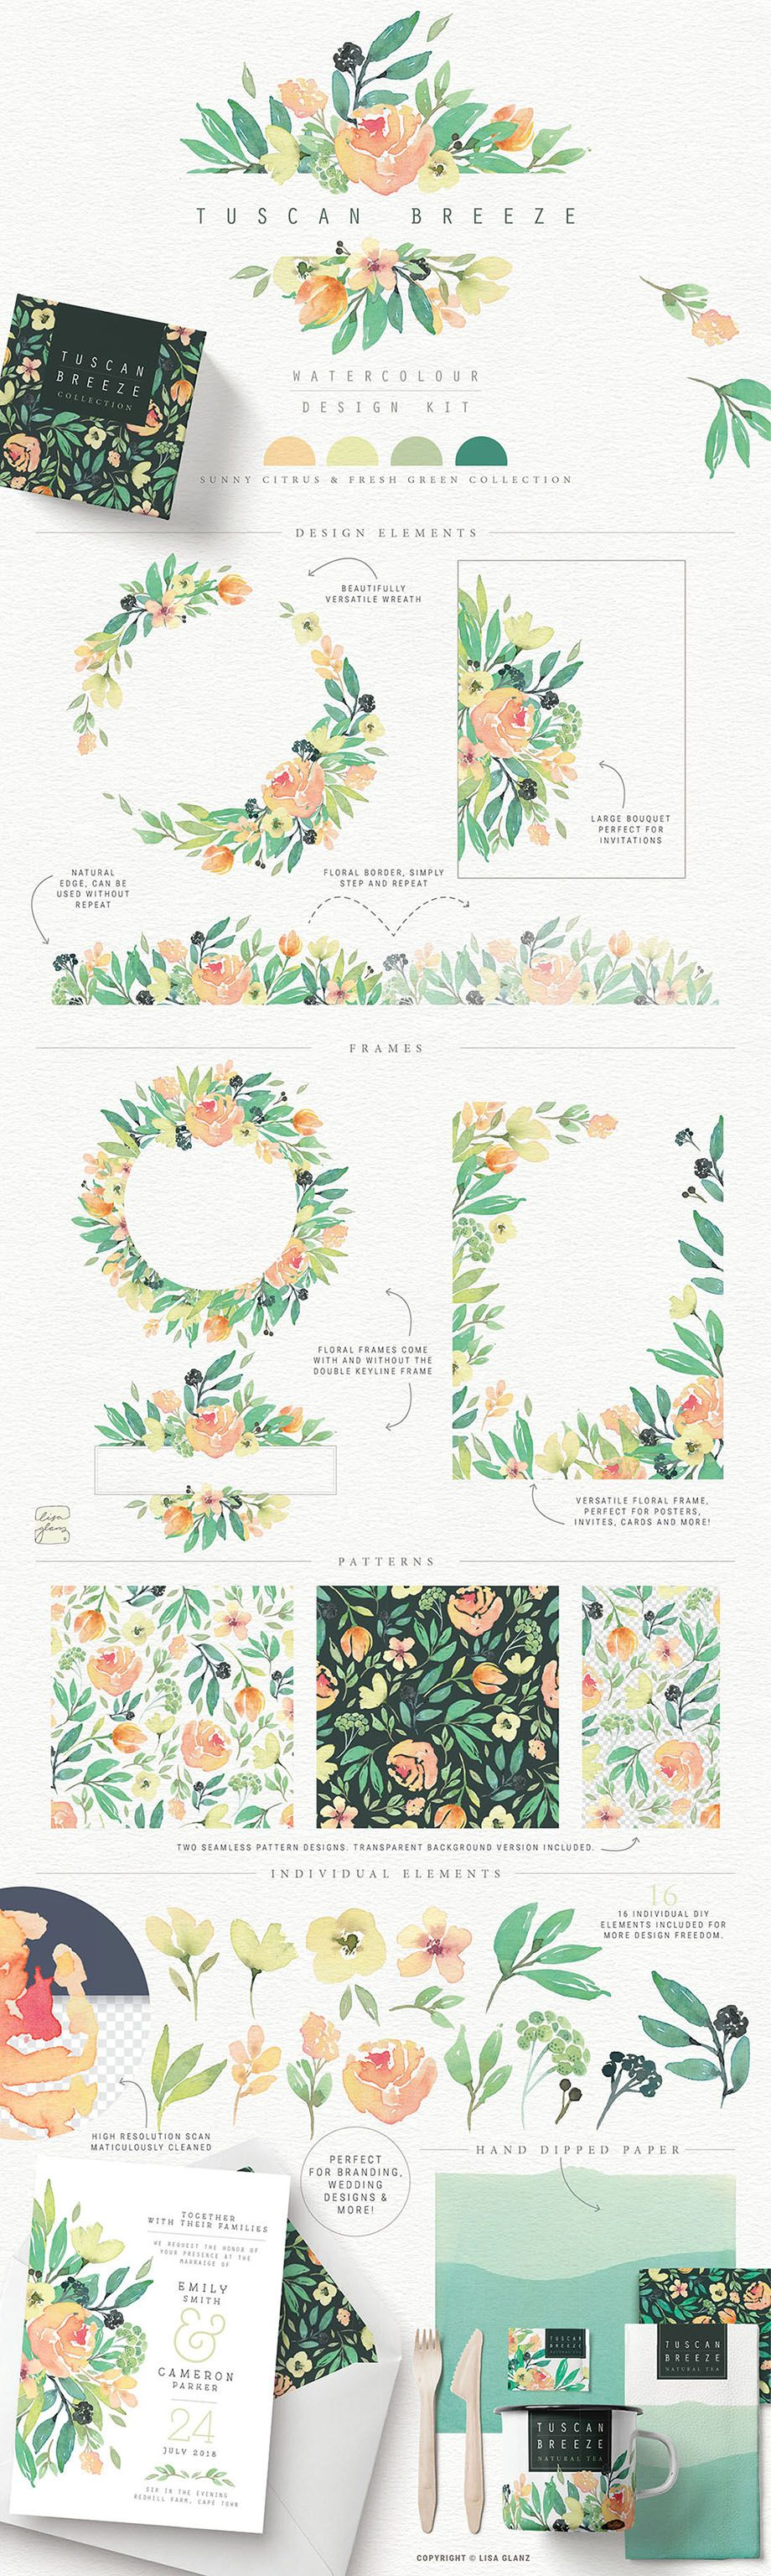 Each watercolor collection has been created with its own trending colour palette and look for easy modern designs. Perfect for wedding stationery, branding, apparel, invites, greetings and beyond!